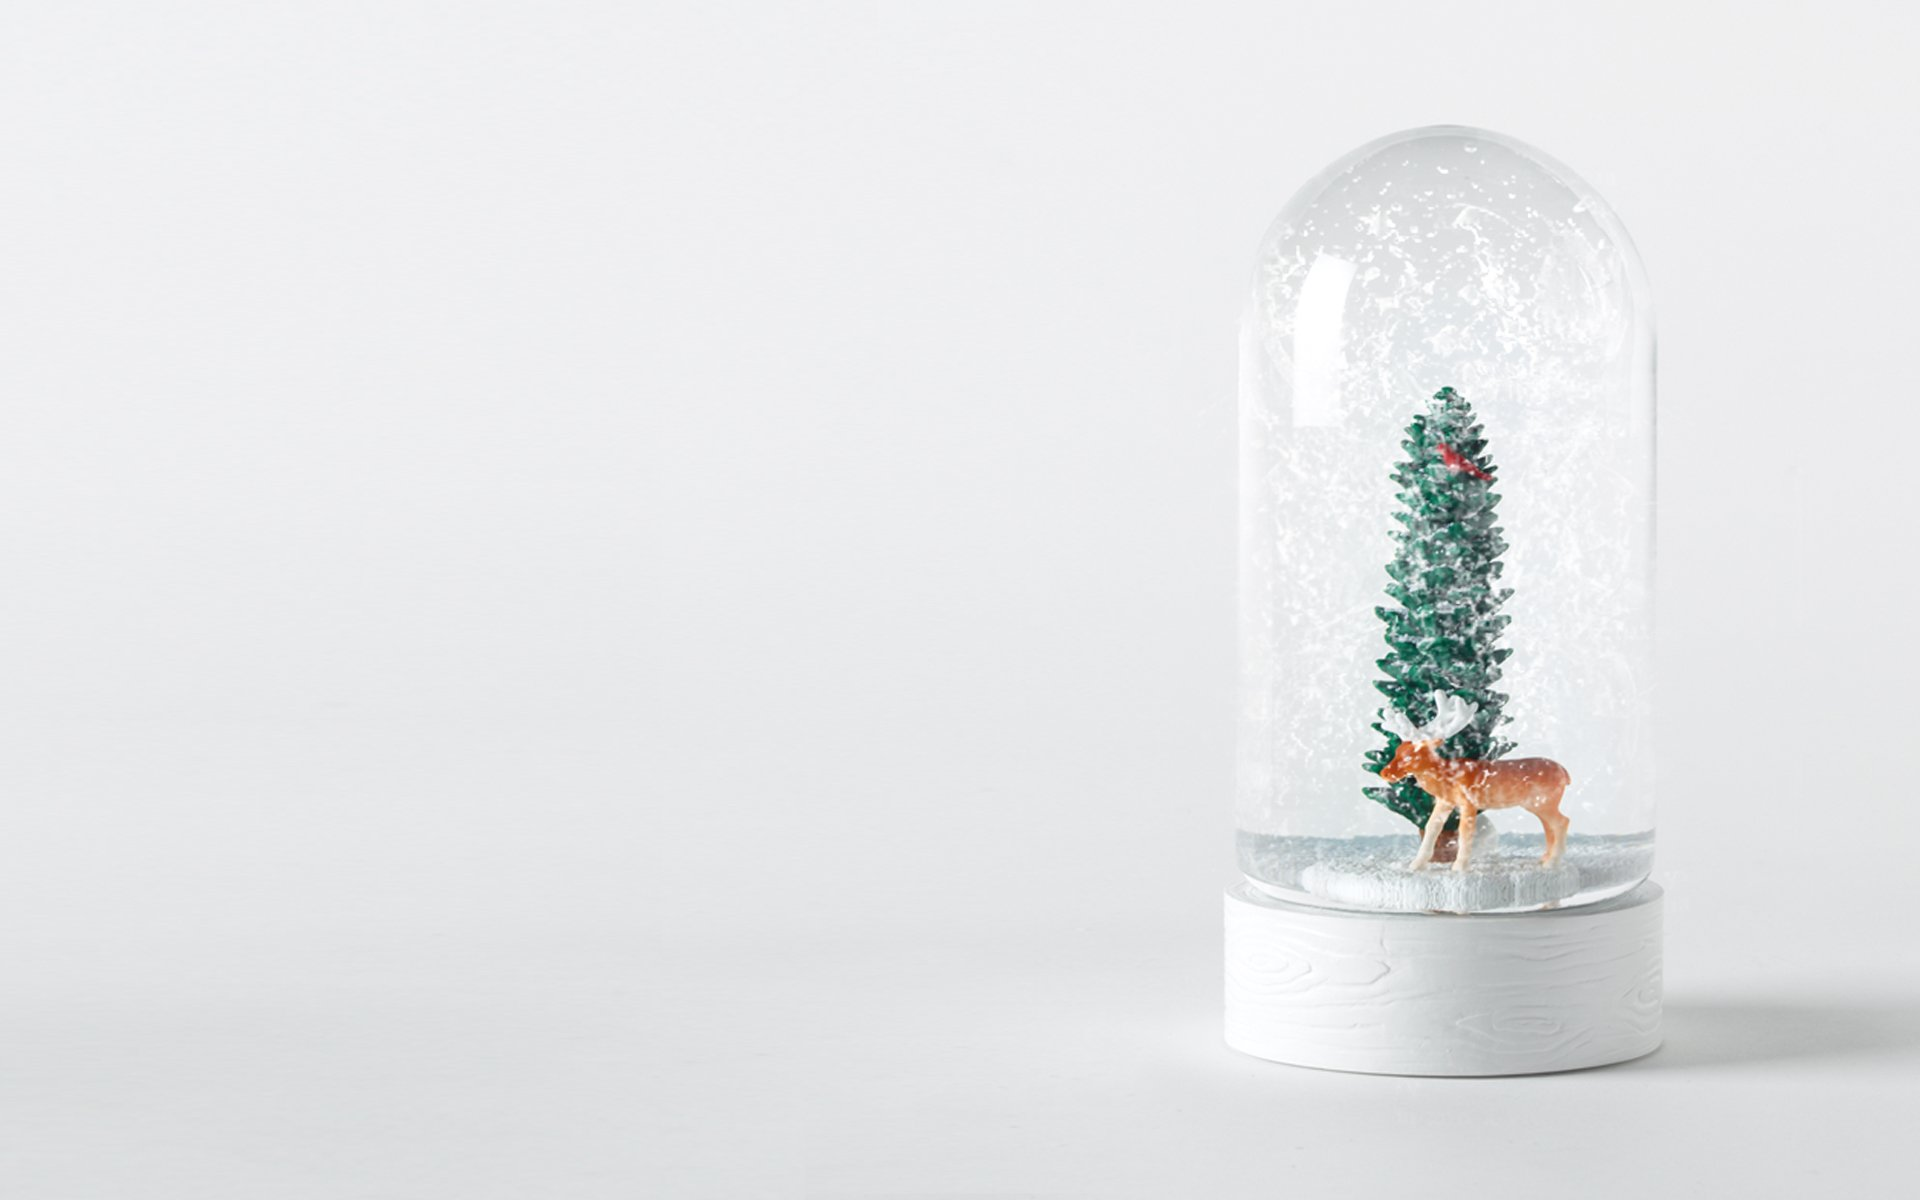 Holiday Snow Globe Wallpaper 62421